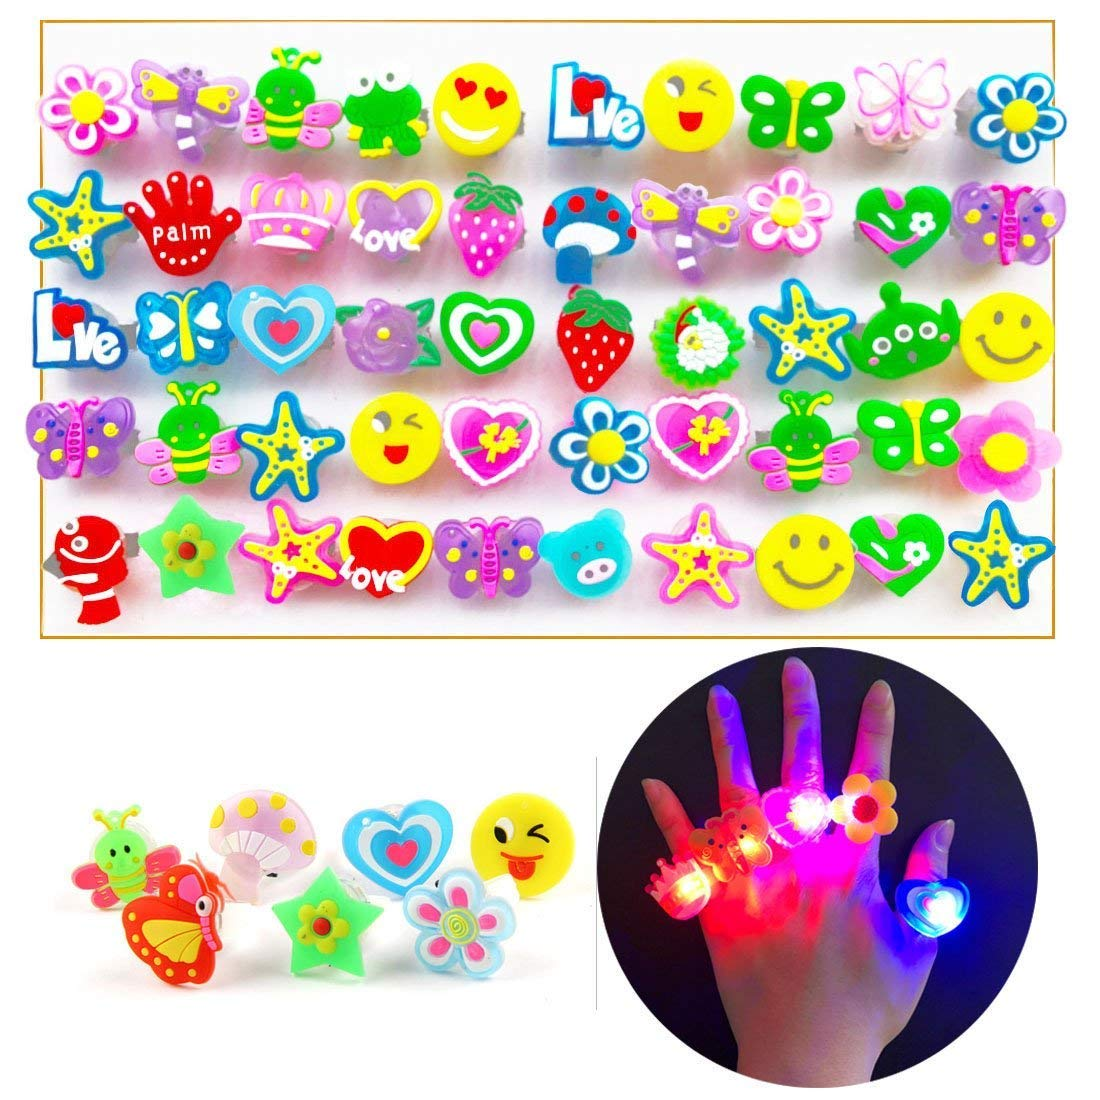 ChangSheng Glow Rings Led Party Supplies,50 Pcs Random Pattern Light Up Rings for Graduation Ceremonies, Birthday Parties and Parties by ChangSheng (Image #1)